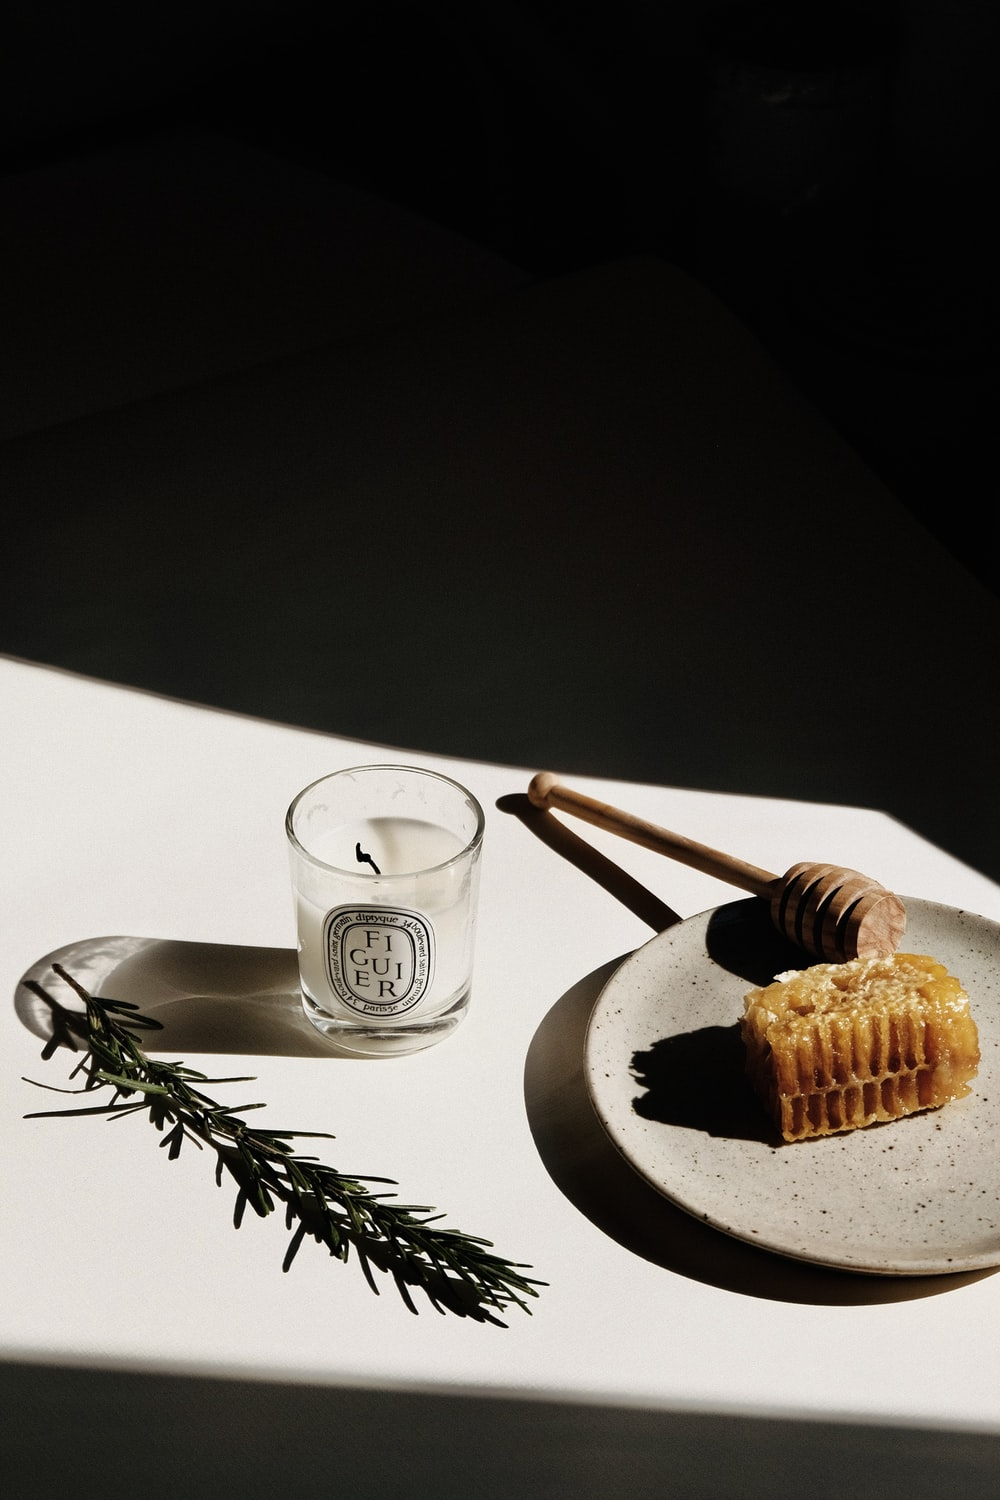 waffle on black plate beside clear drinking glass